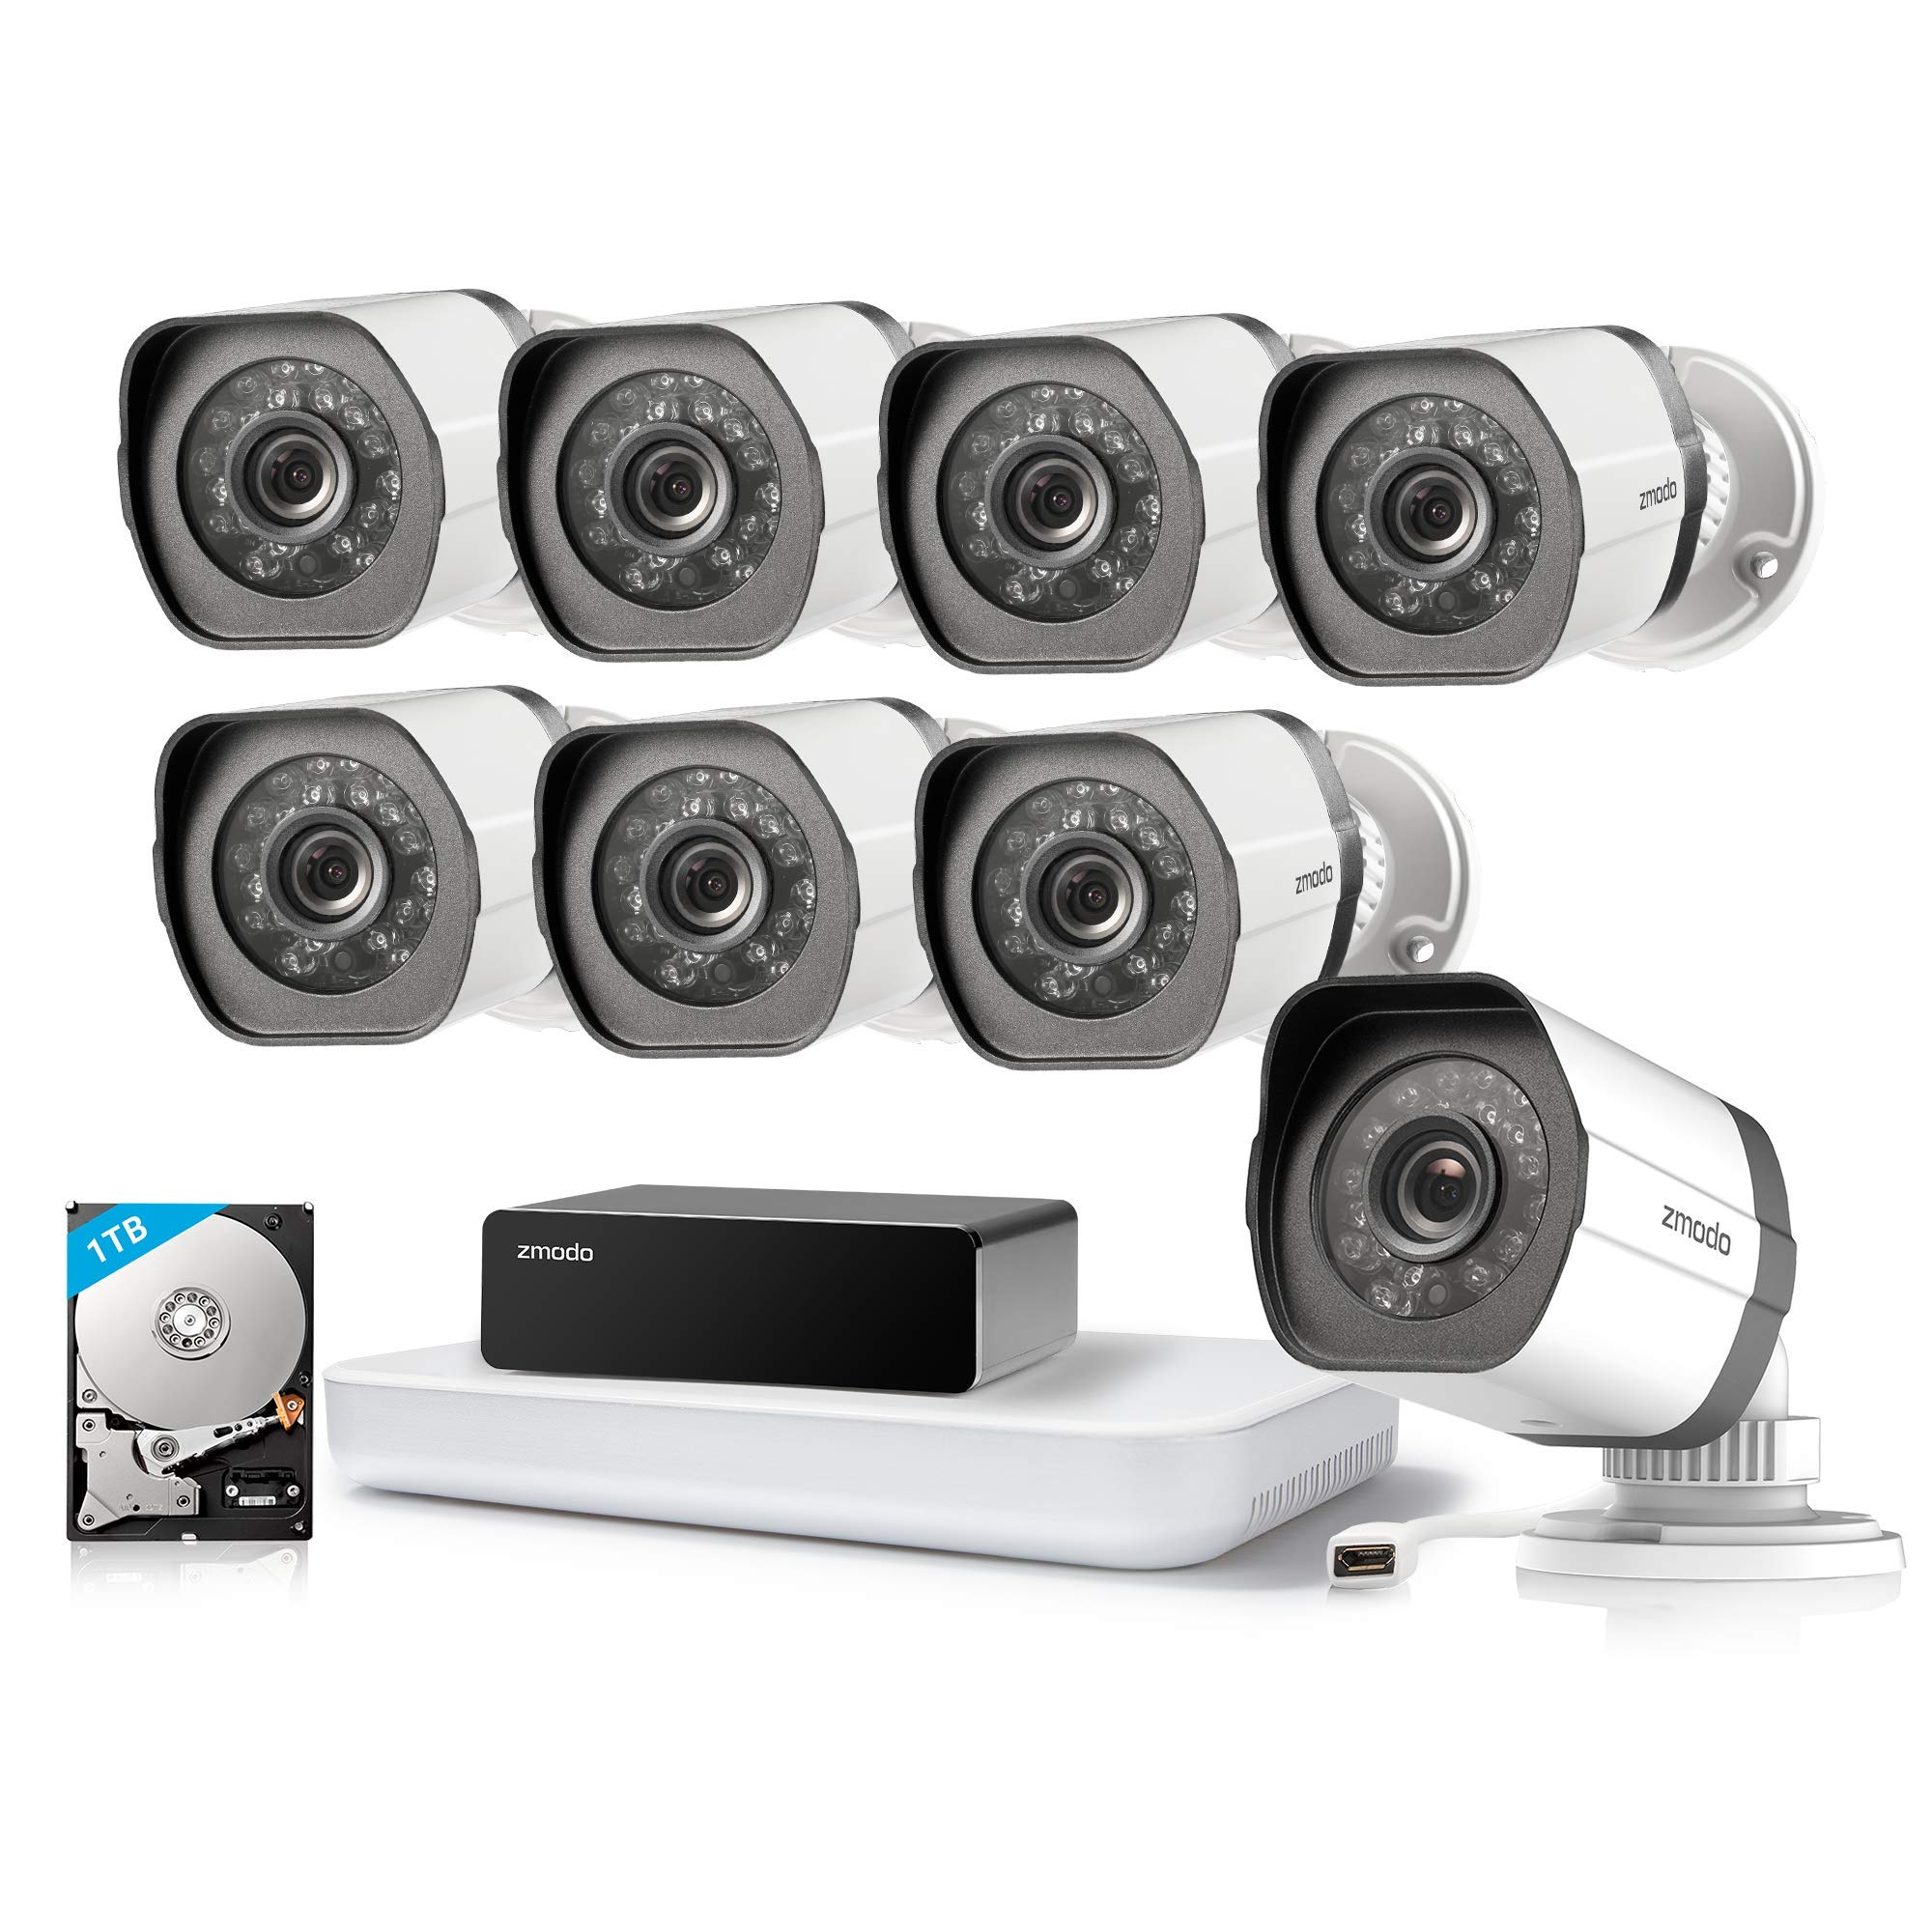 Zmodo 8CH 1080P HDMI NVR w/1TB HDD 8Pack 720P Security Camera System w/Repeater for Flexible Installation & Extension, Customizable Motion Detection by Zmodo